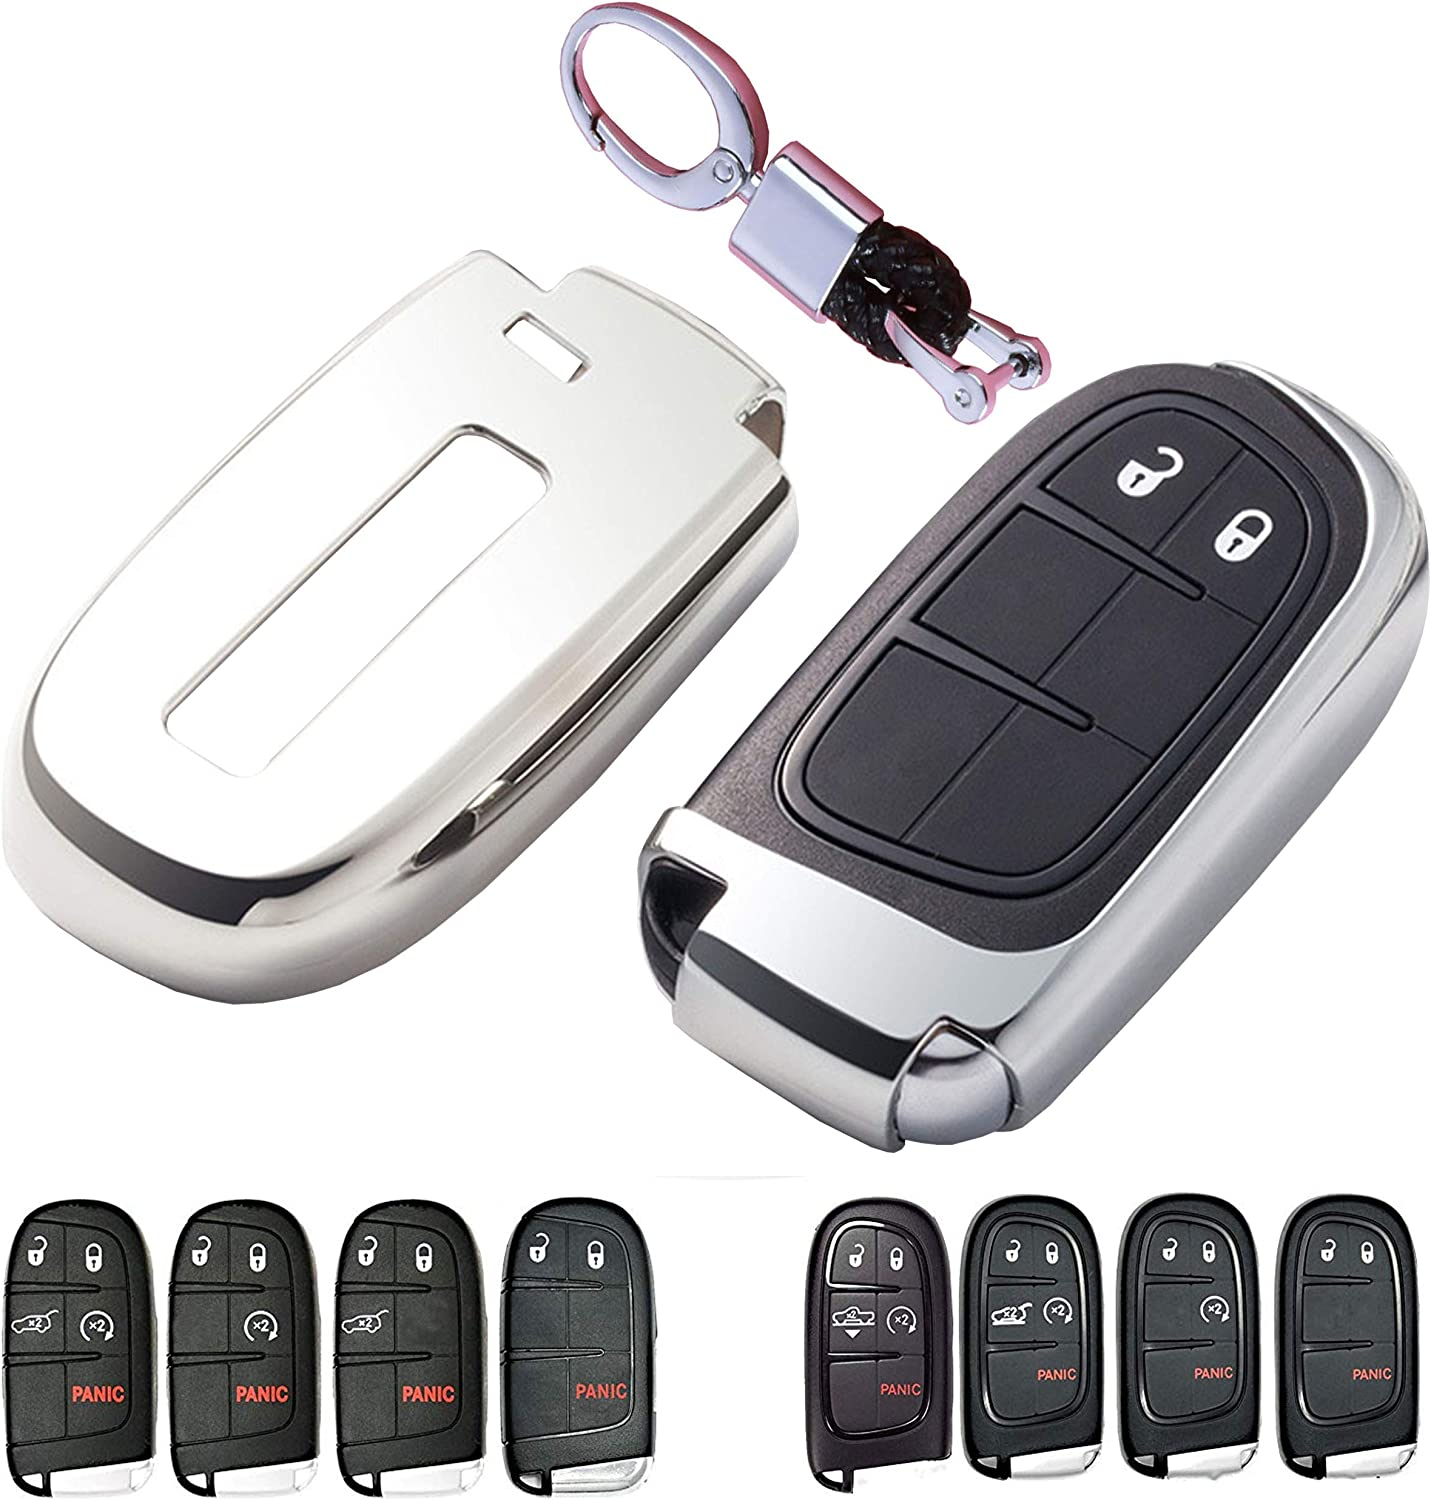 The Best Premium Soft TPU Half Cover Protection Smart Remote Keyless Key Fob Case With Key Chain Fit For Jeep//Dodge//Chrysler Key Fob